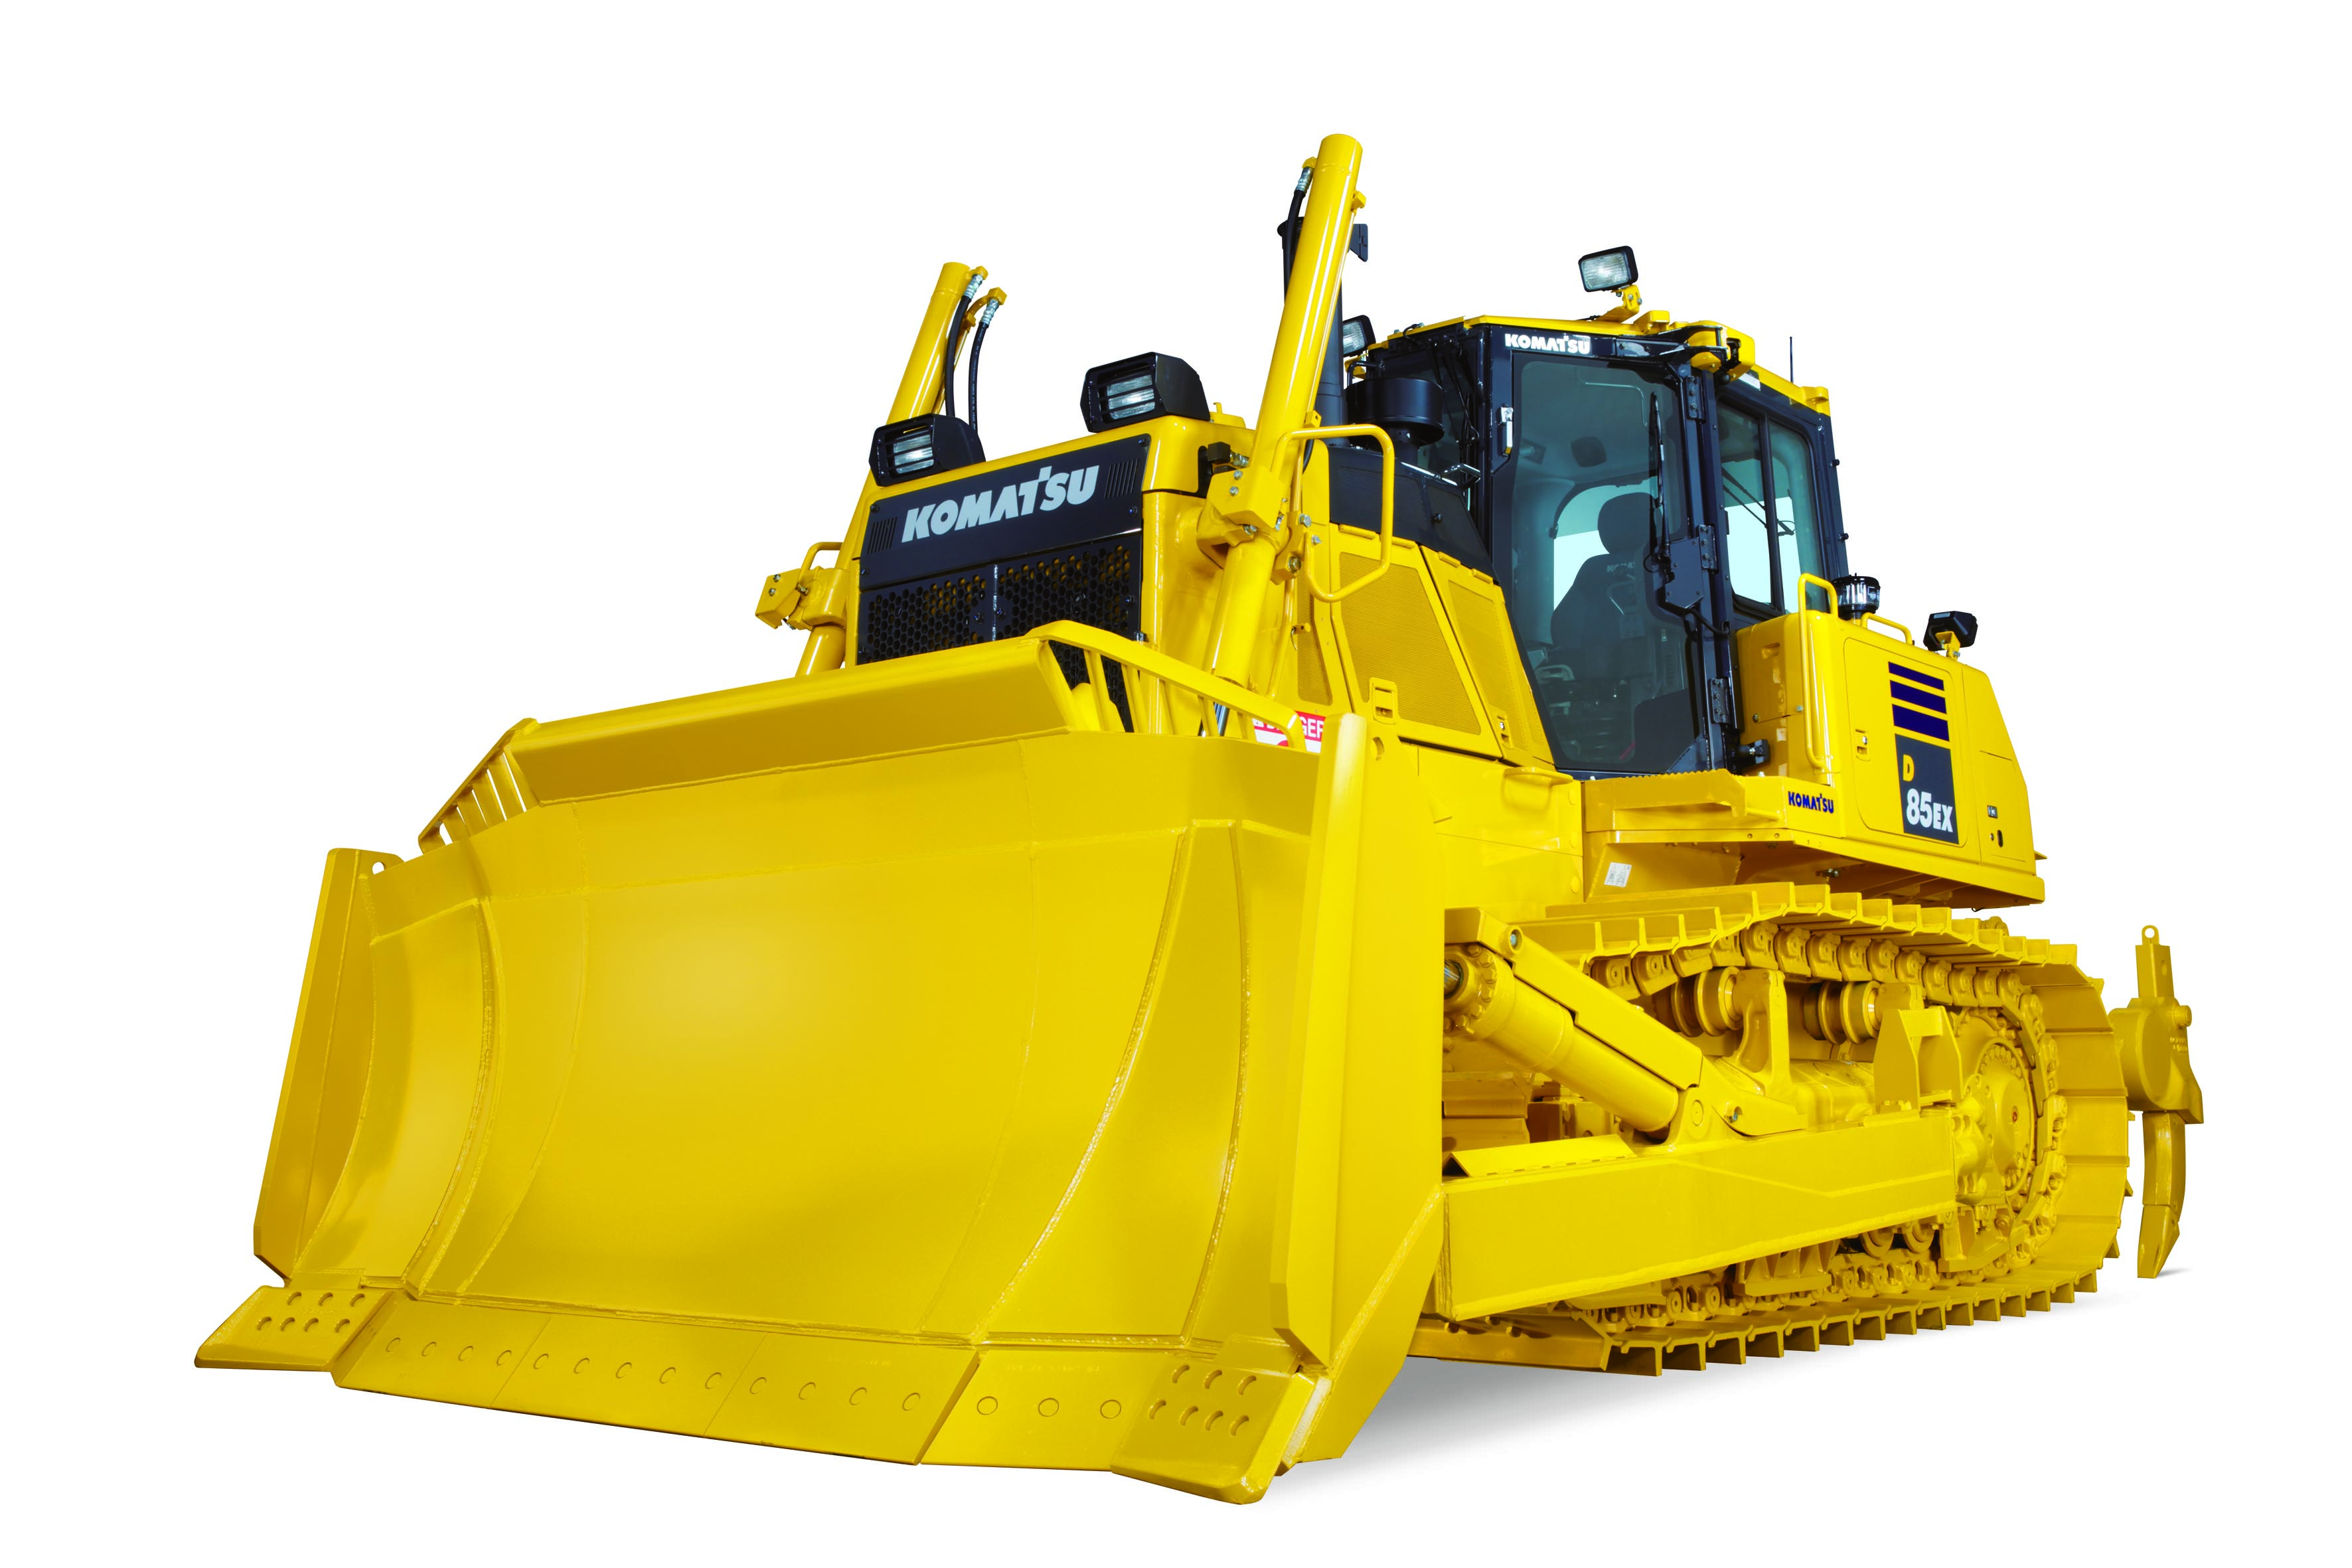 Komatsu Bulldozers Specifications Manuals Technical Data On D31p Wiring Diagram D 85 Ex I 18 1165371